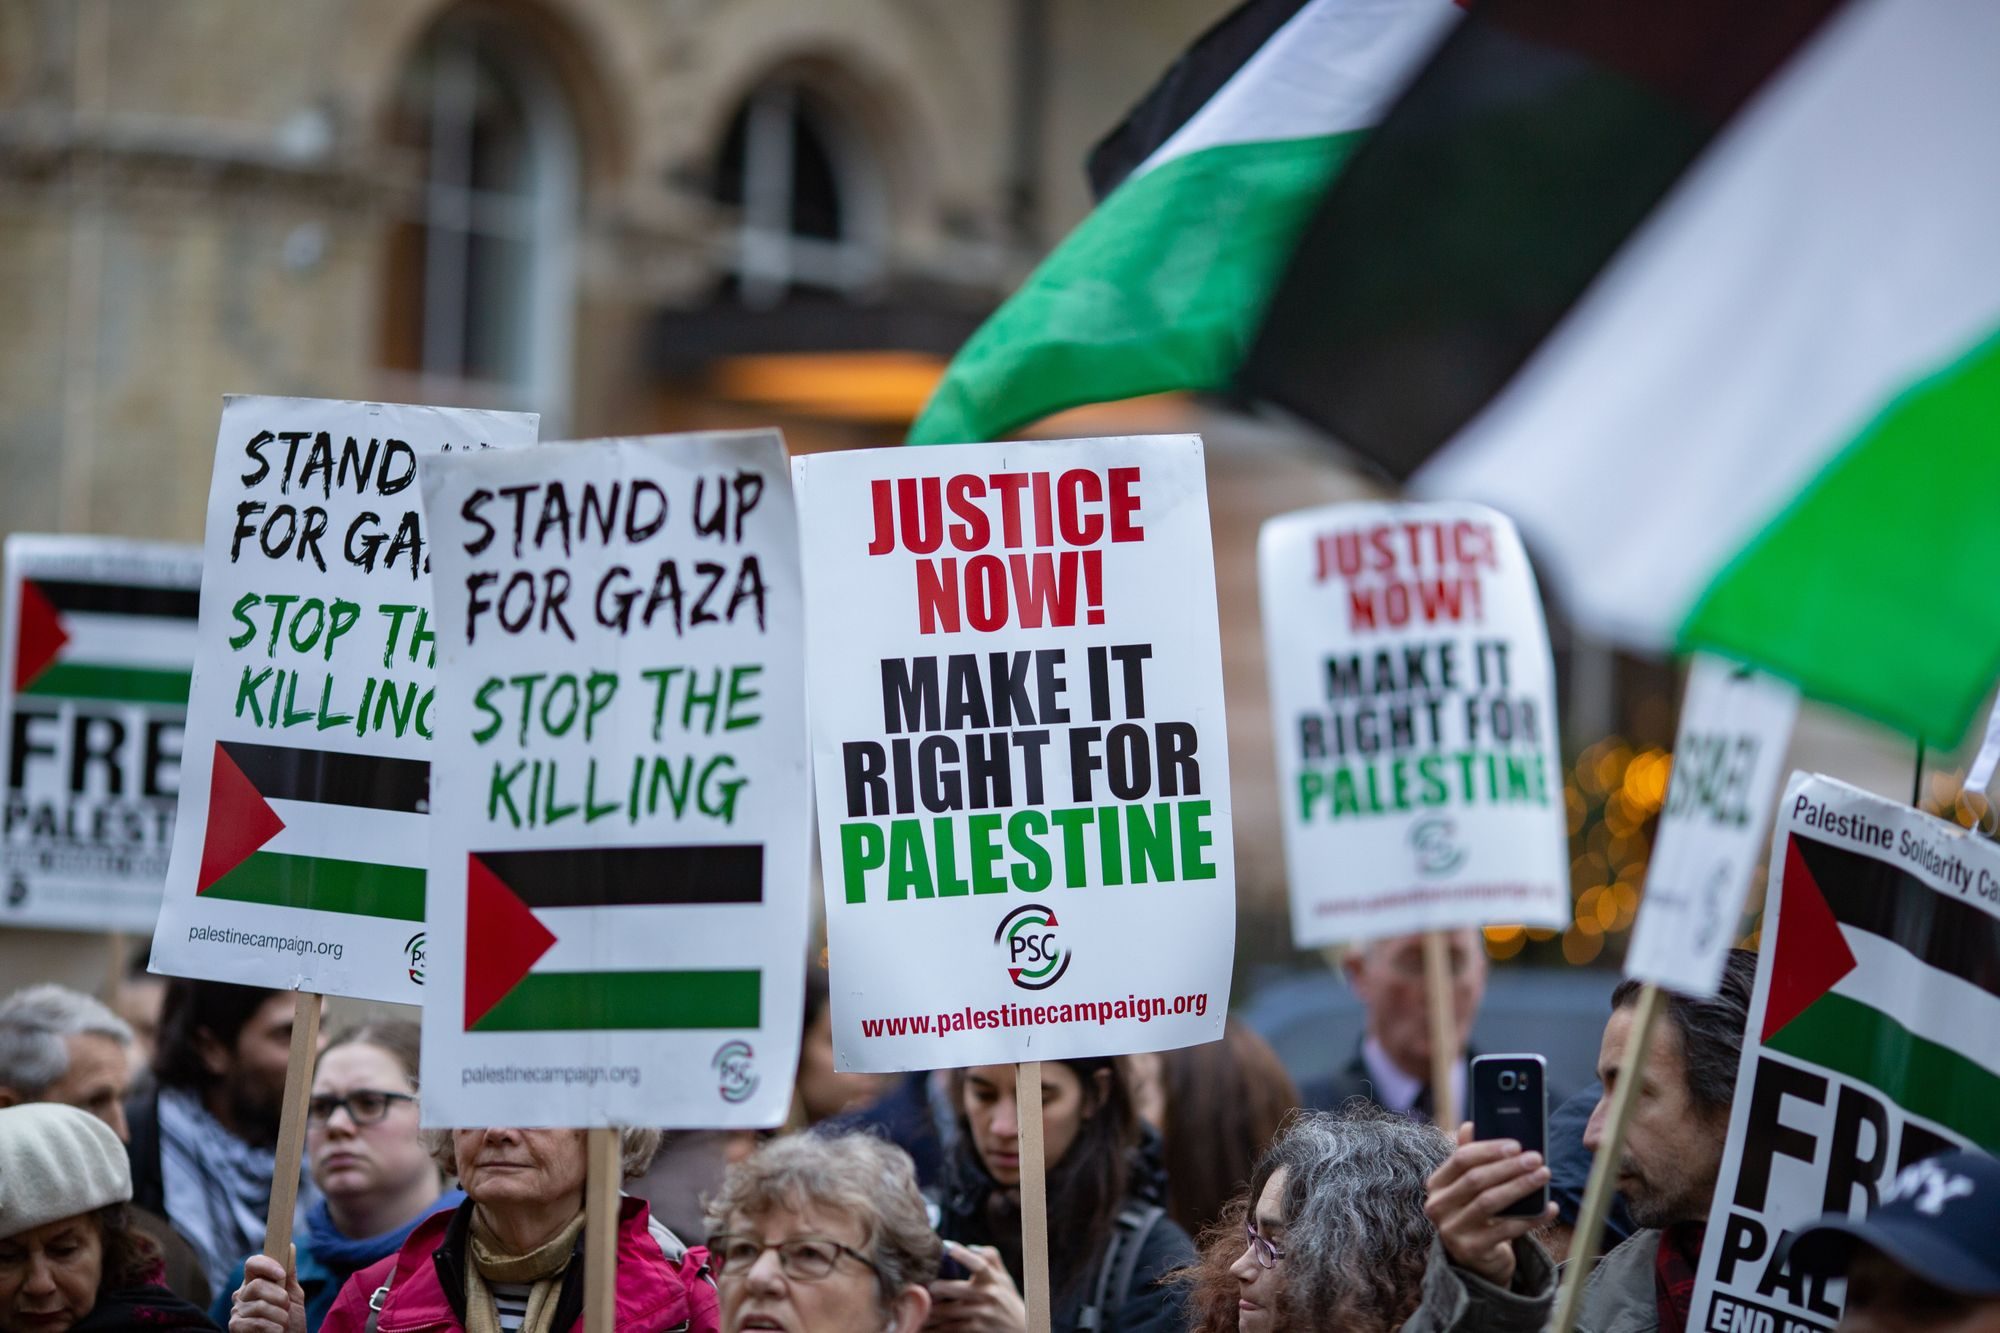 Palestine Solidarity Campaign: Protest at BBC Headquarters in London